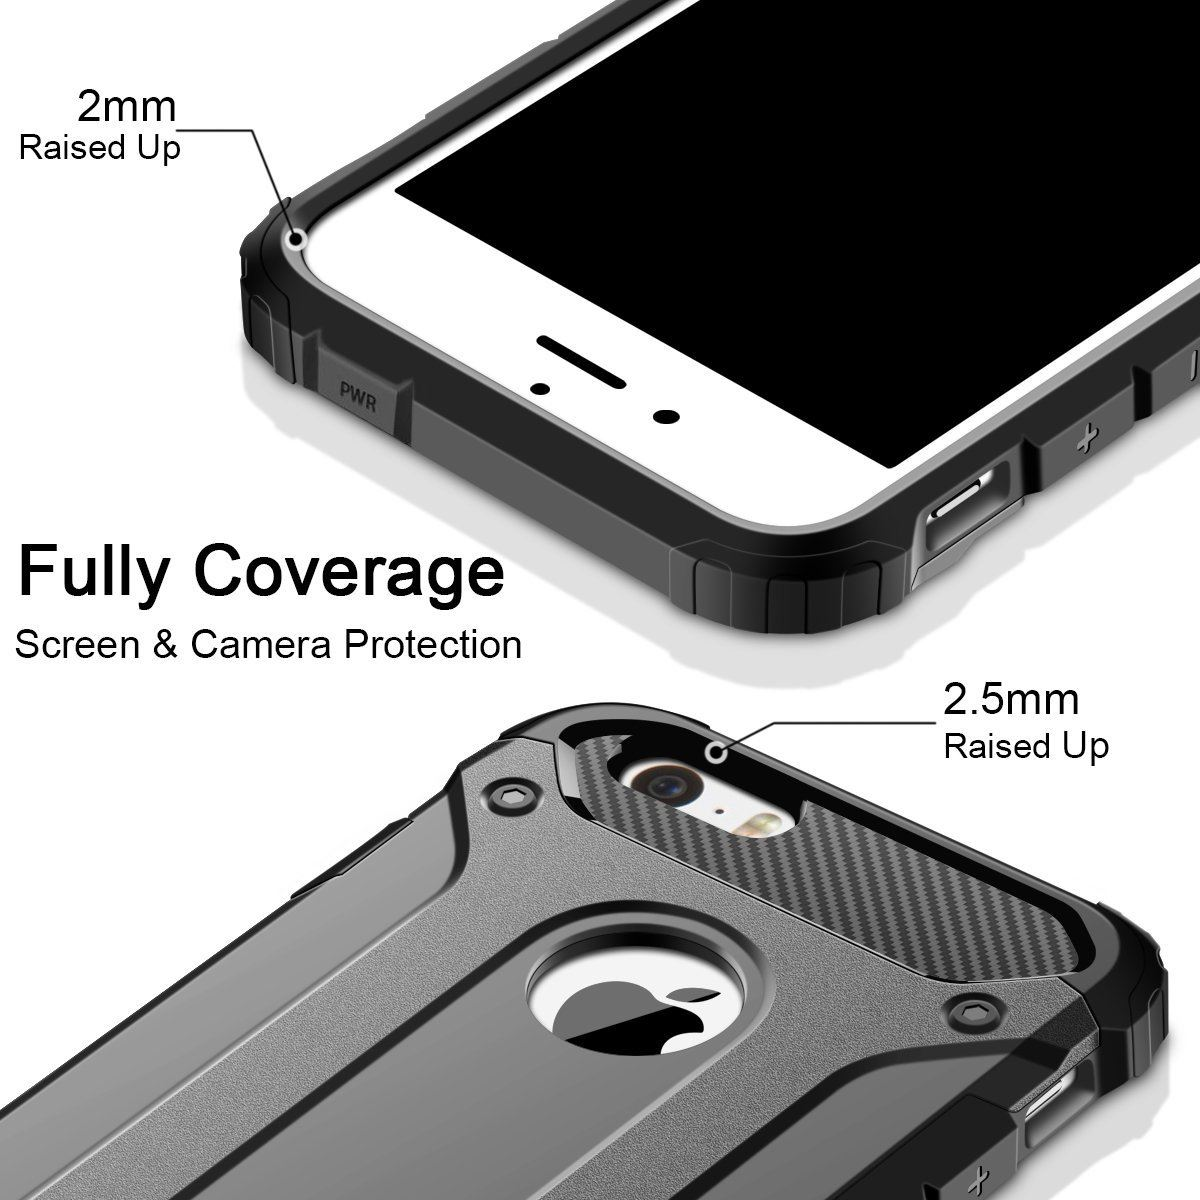 Hybrid-Armor-Shockproof-Rugged-Bumper-Case-For-Apple-iPhone-10-X-8-7-Plus-6s-5s miniature 17